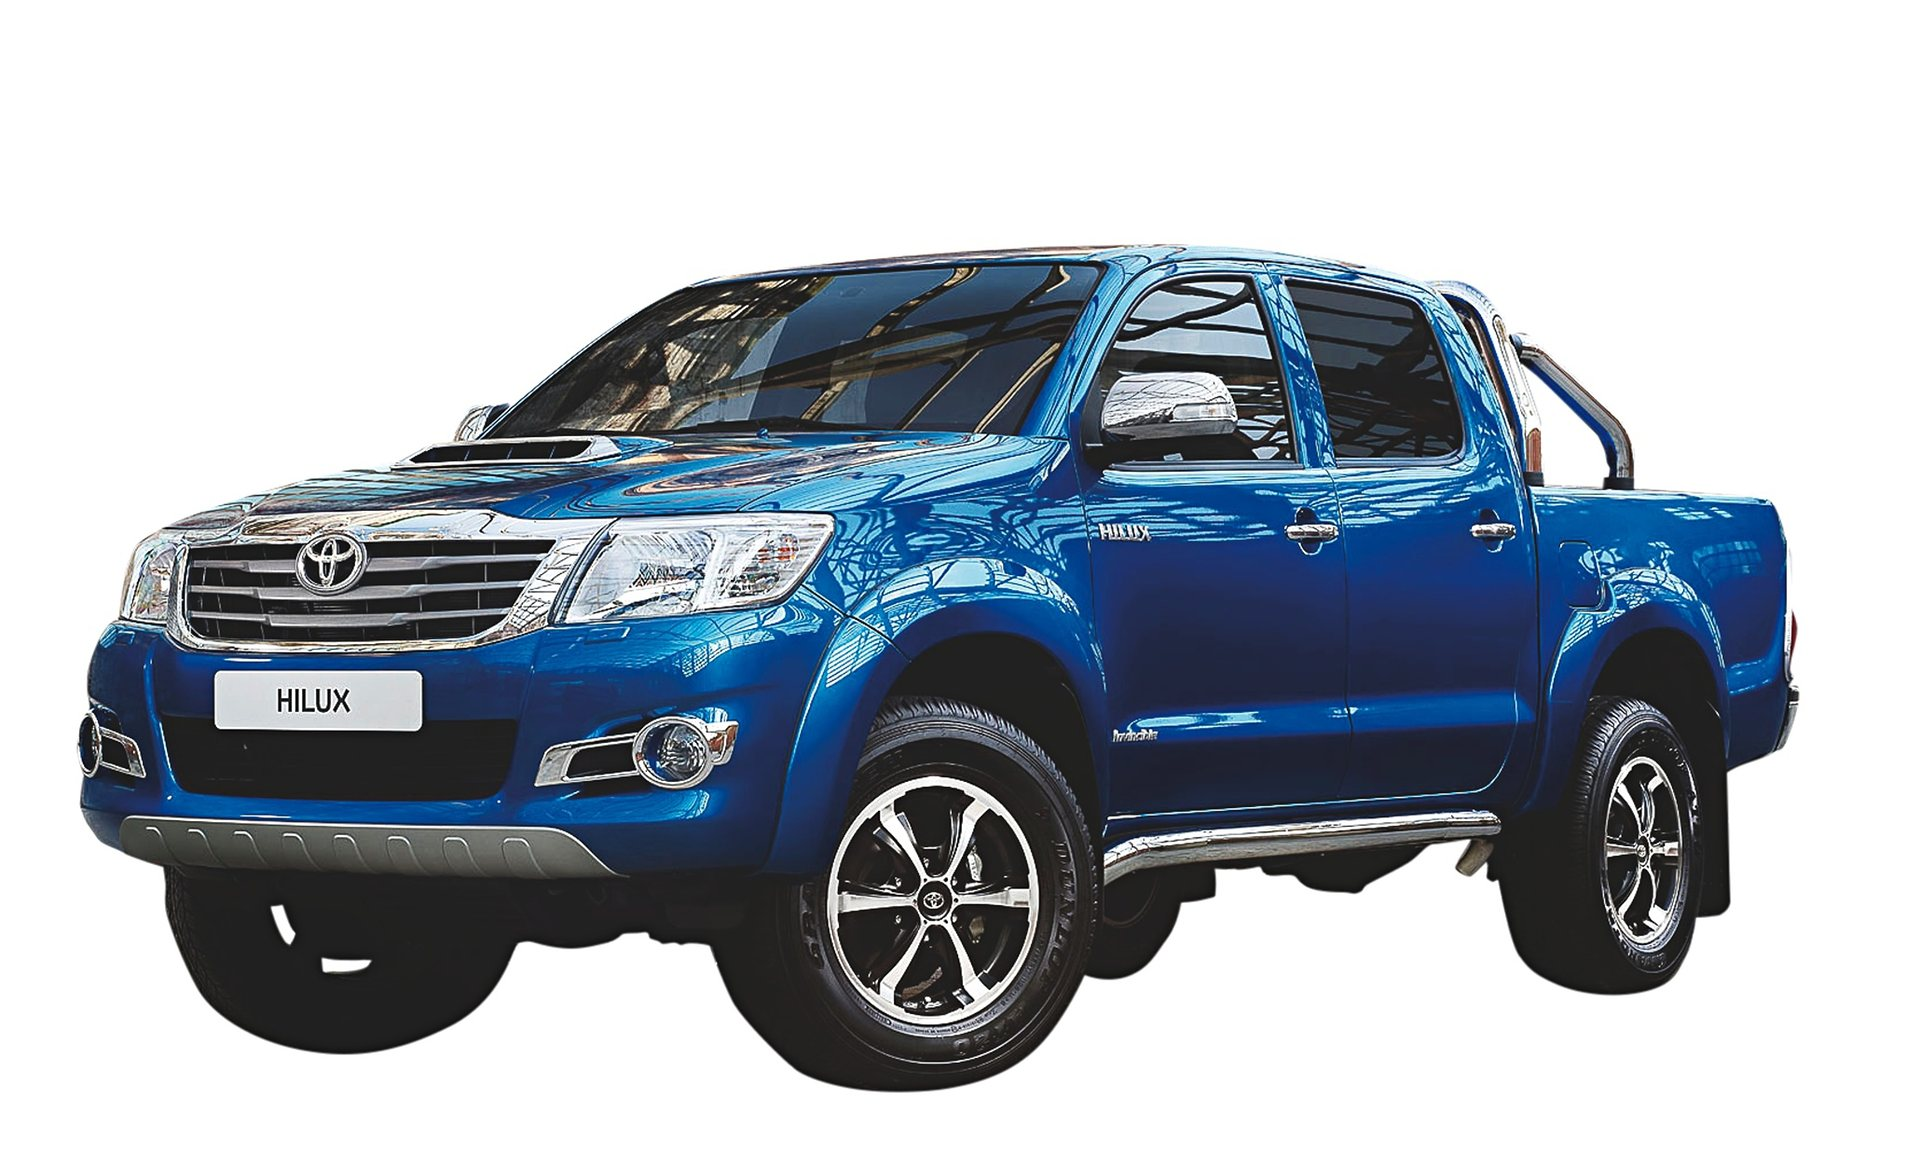 Toyota-Hilux-Invincible-X-009